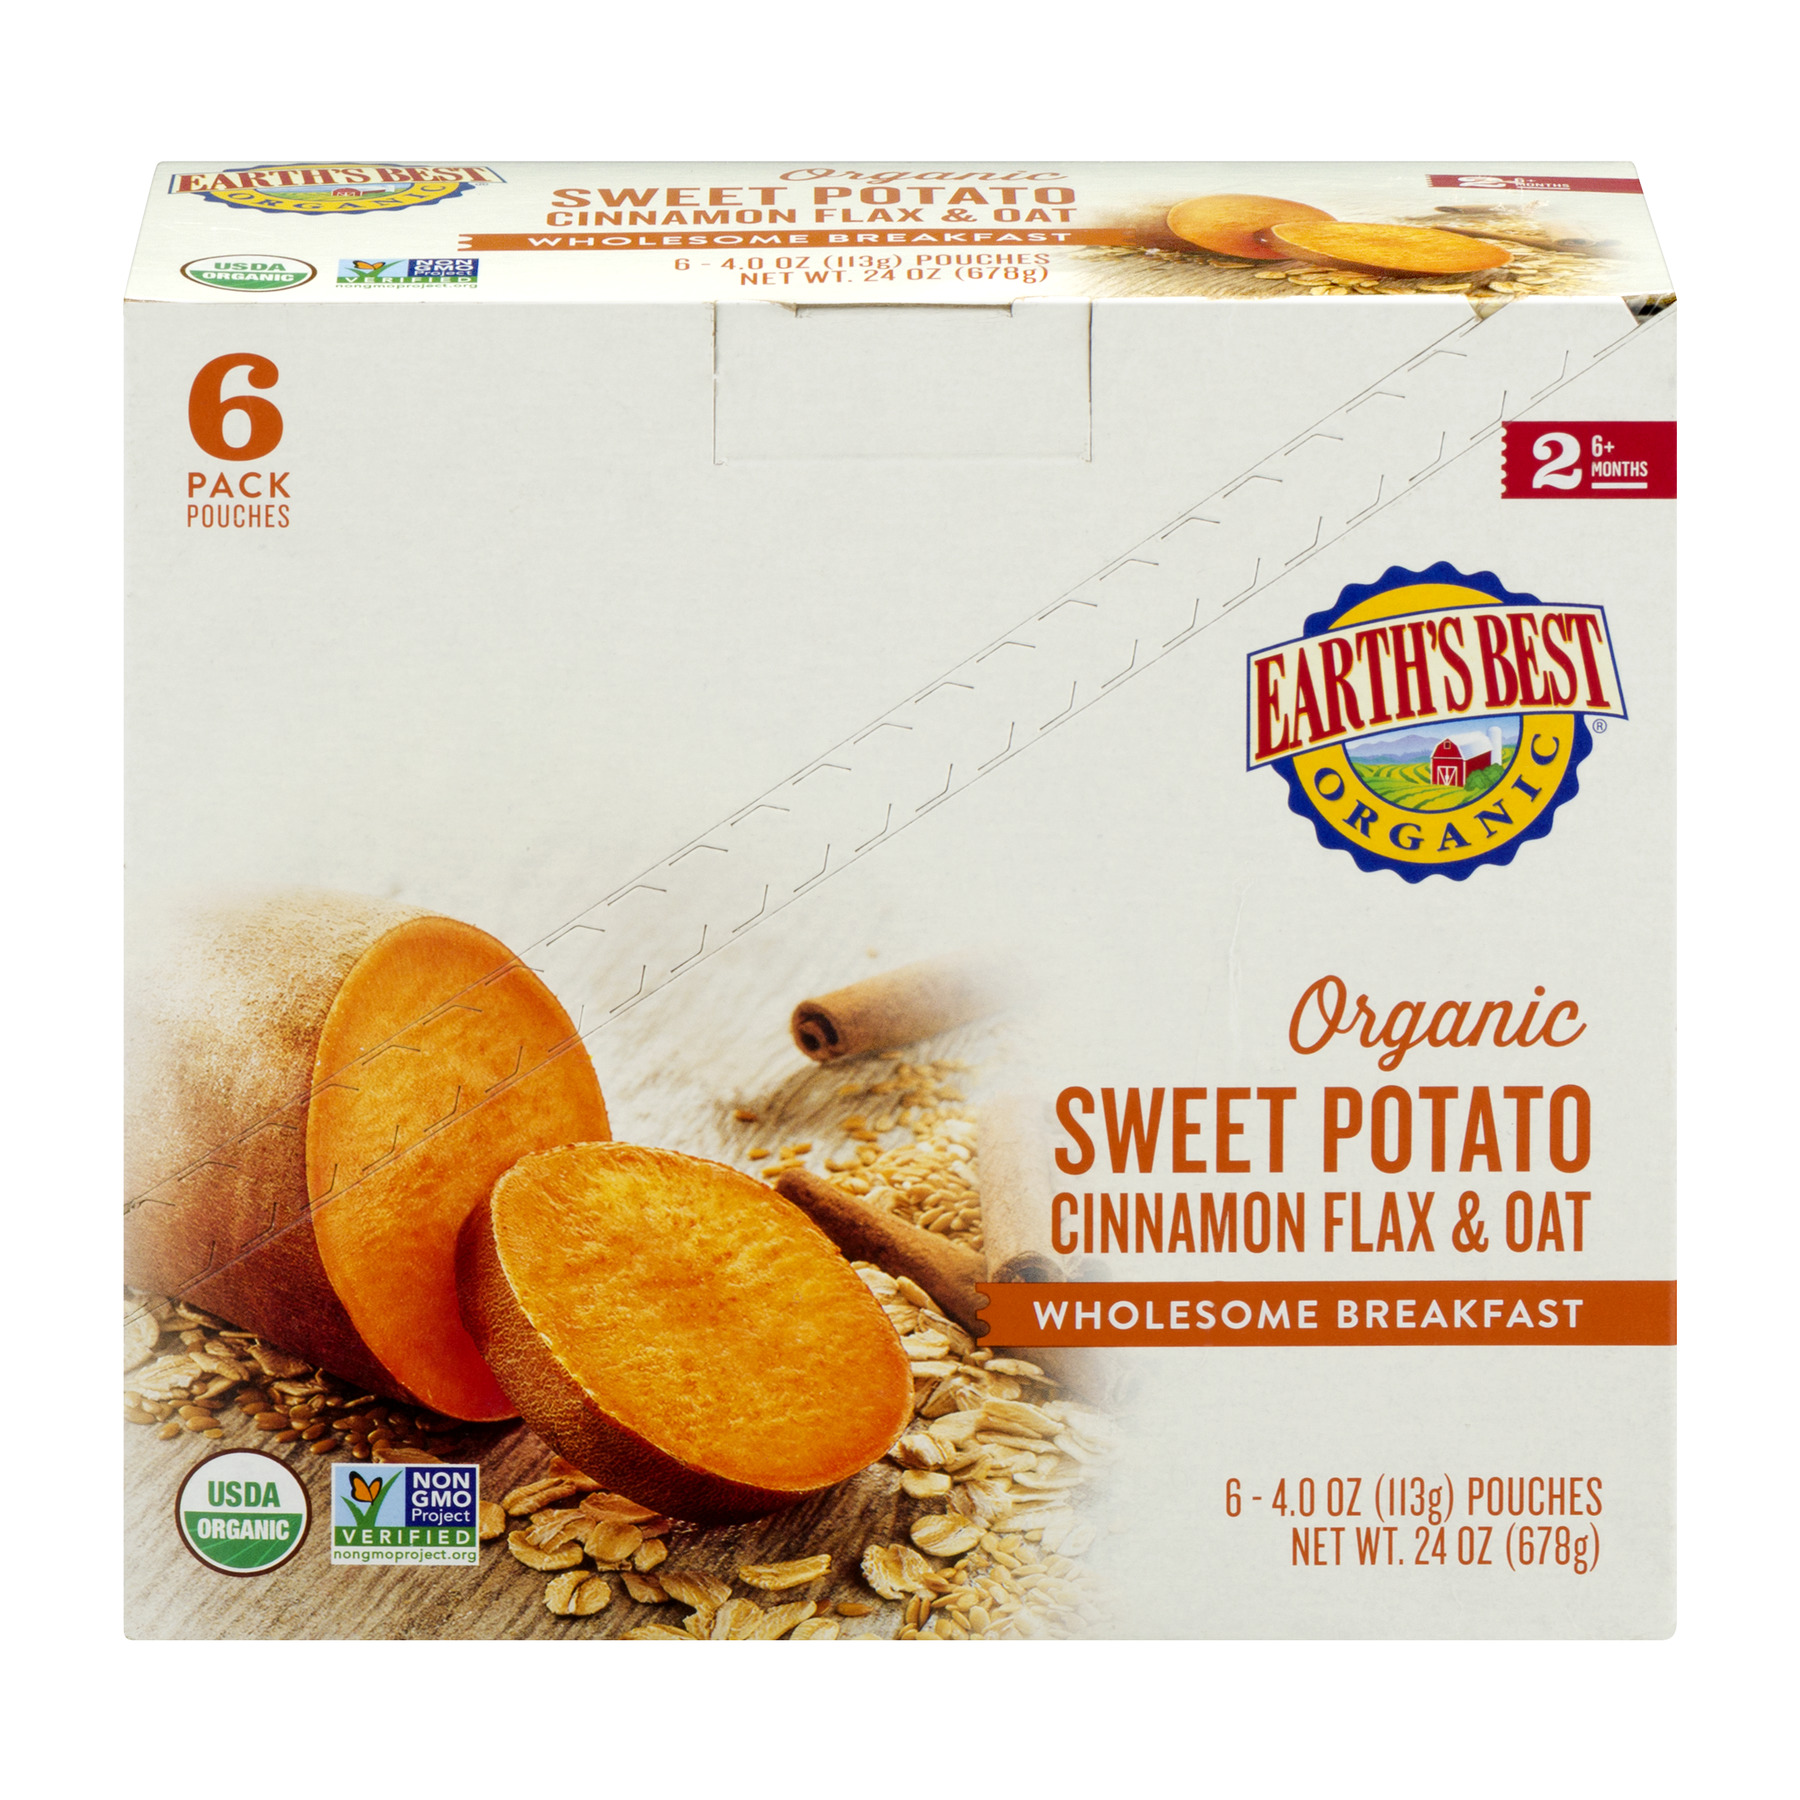 Earth's Best Organic Stage 2, Sweet Potato Cinnamon Flax & Oat, 4 Ounce Pouch (Pack of 6)